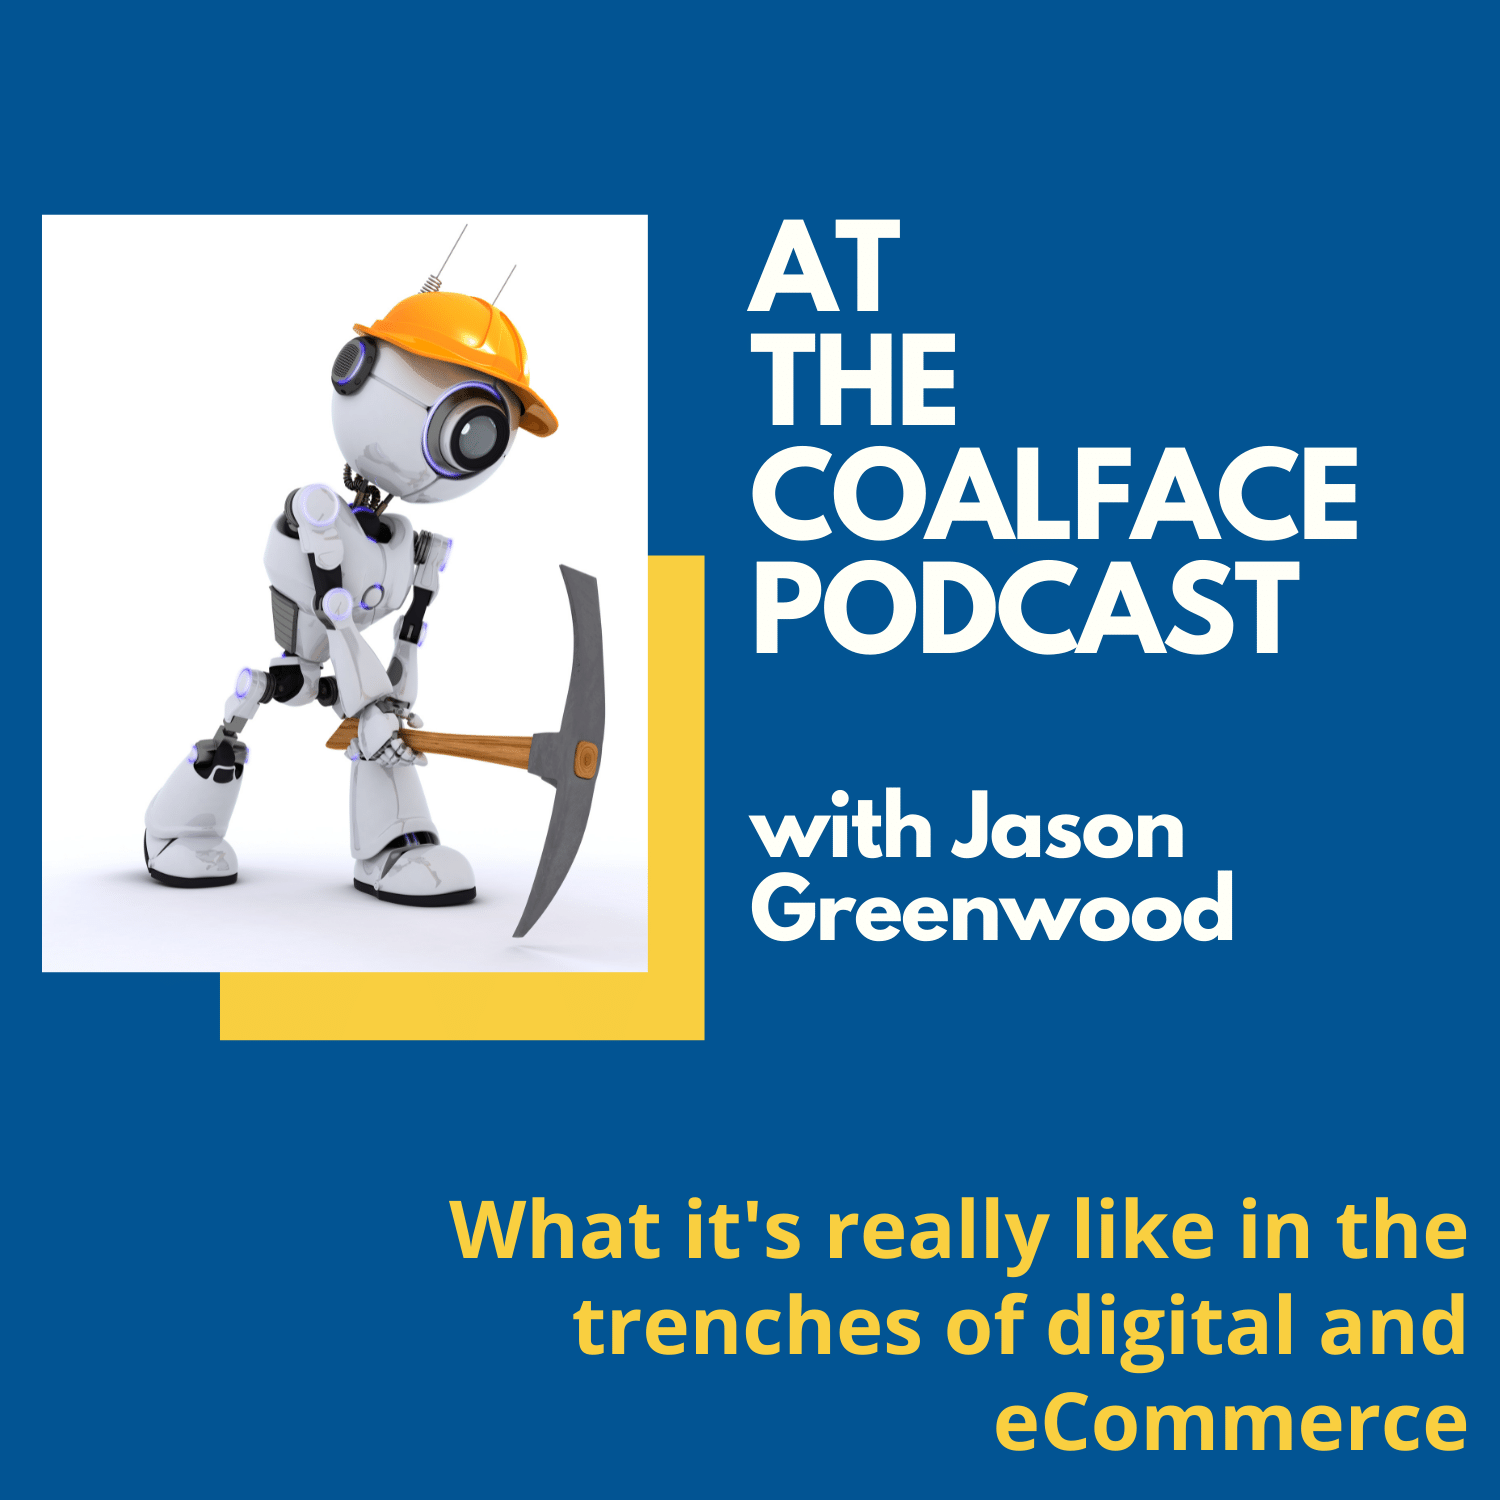 At the Coalface Podcast - eCommerce Tech & Trends